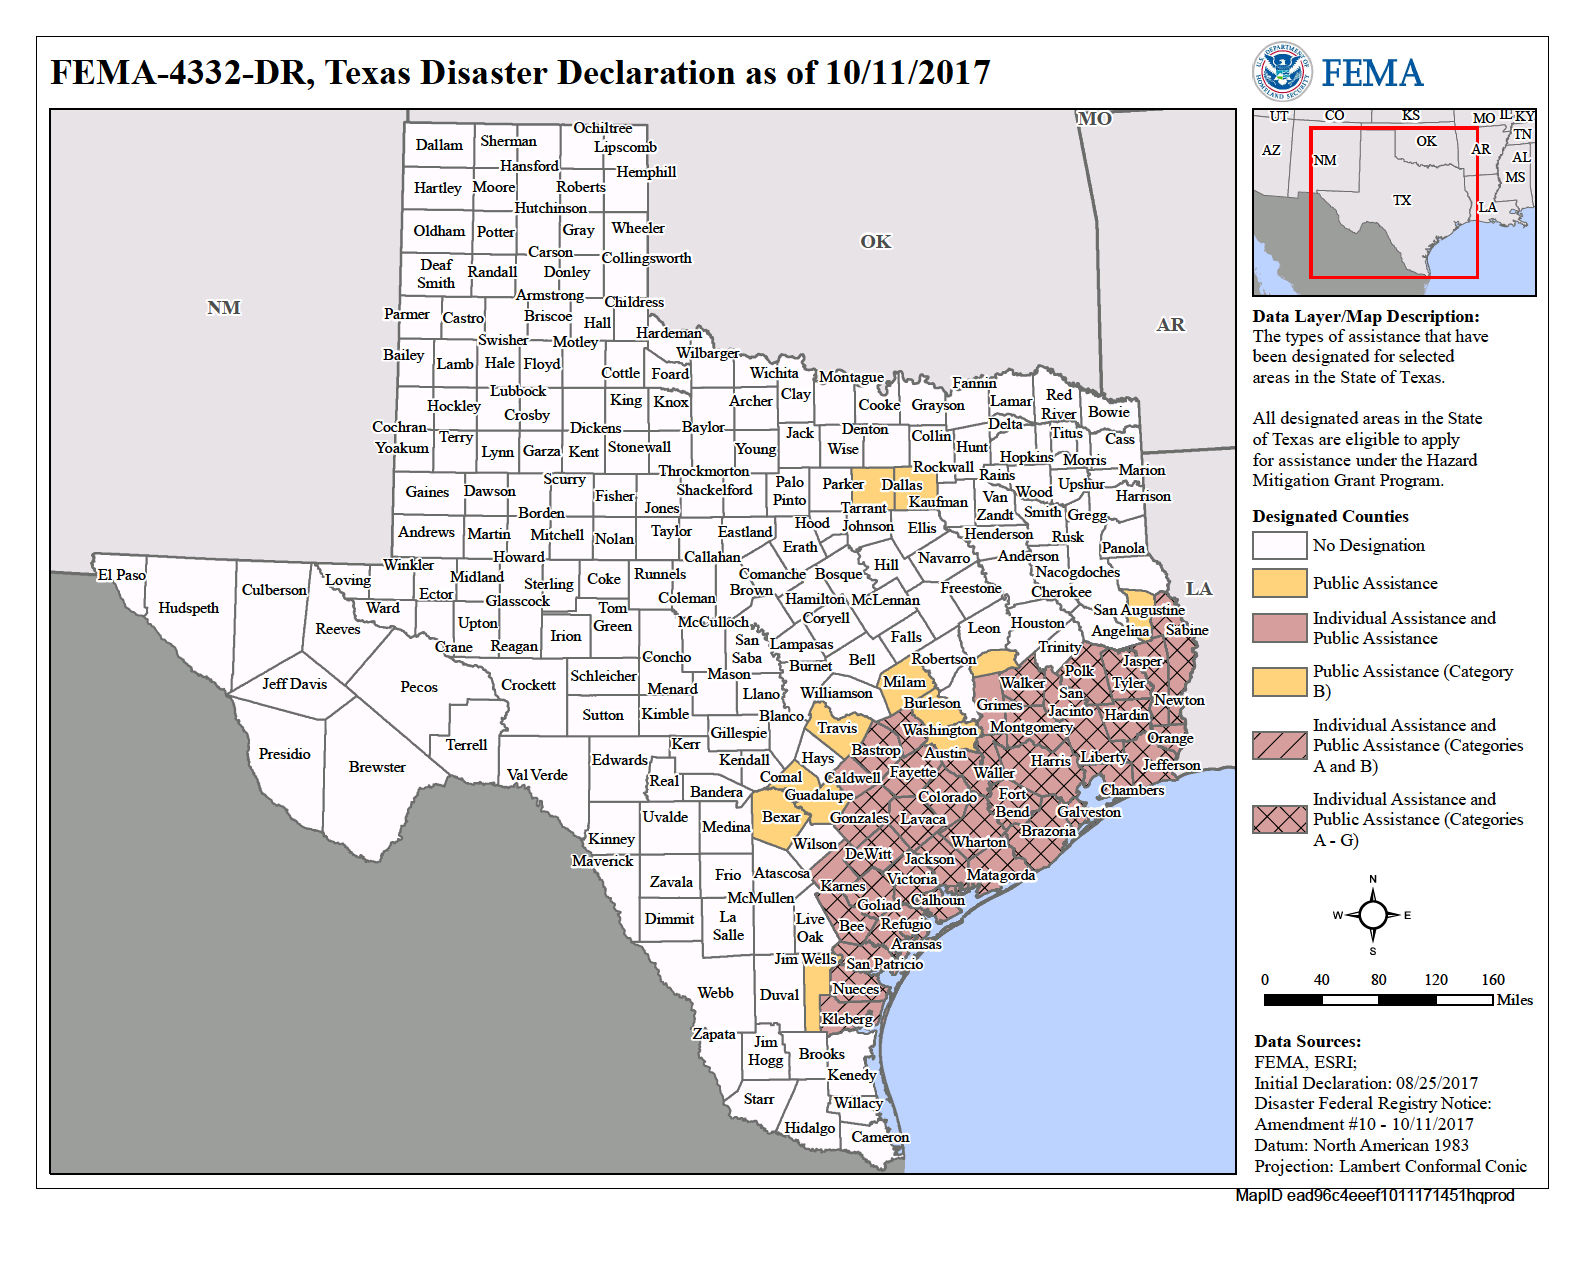 Texas Hurricane Harvey (Dr-4332) | Fema.gov - Fema Flood Maps Lee County Florida